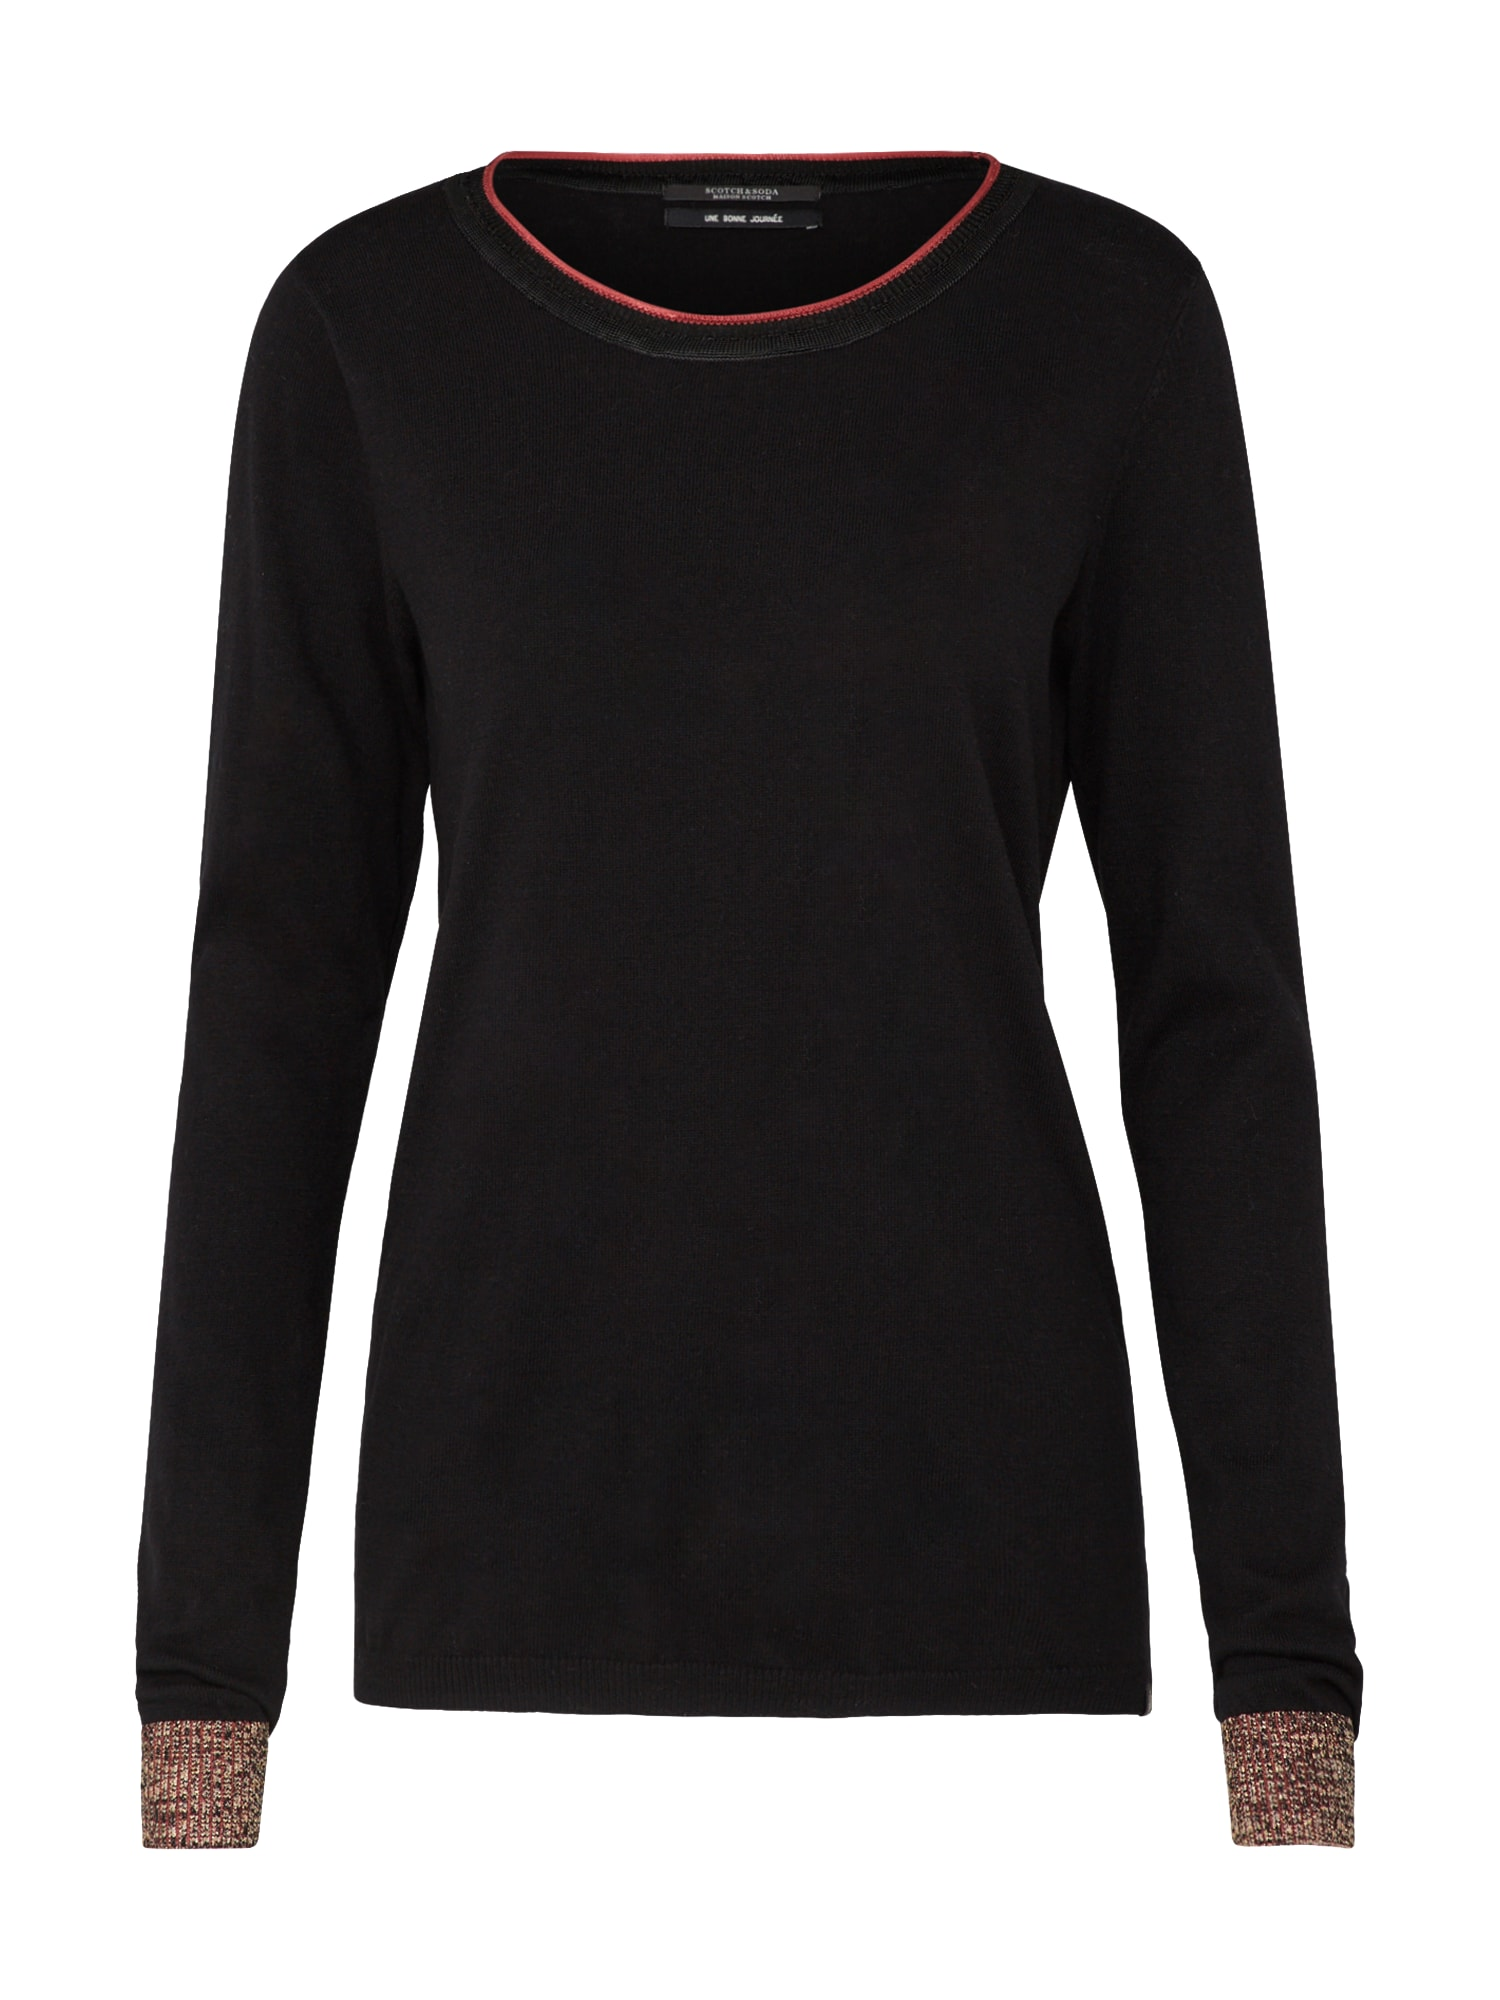 SCOTCH  and  SODA Dames Trui Basic crew neck knit with special ribs zwart